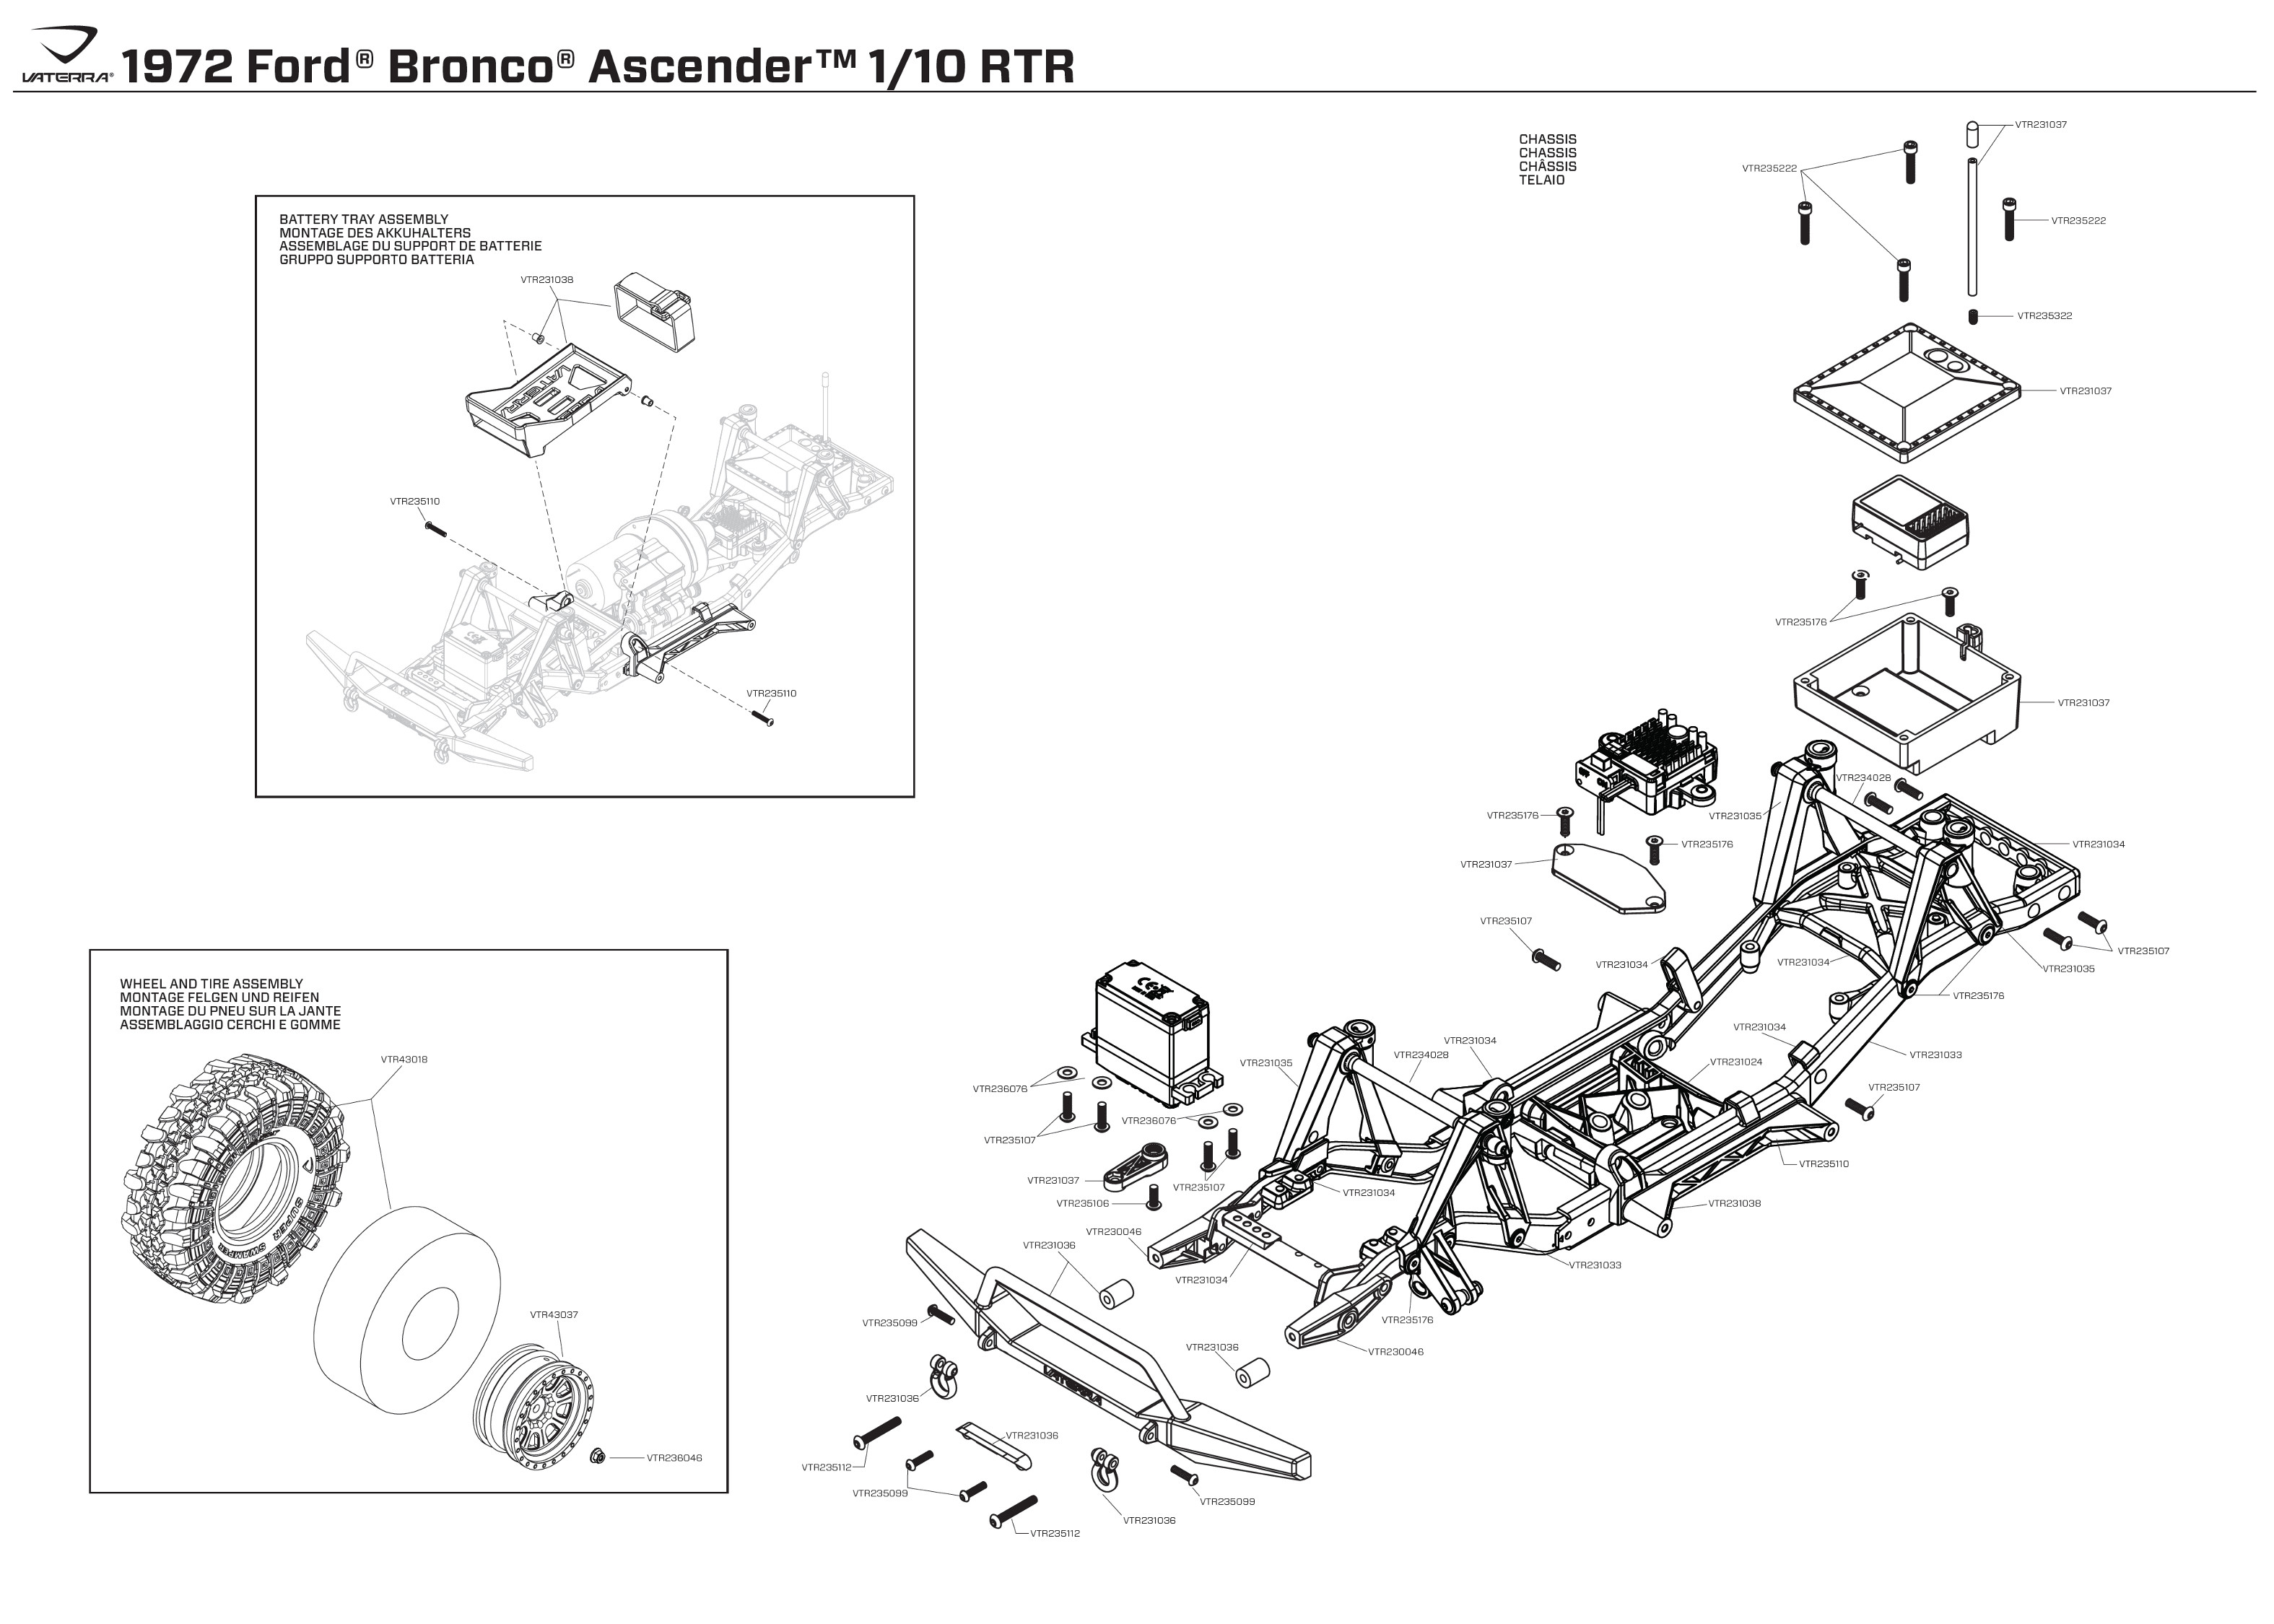 Exploded view: Vaterra Ford Bronco 1972 1:10 4WD Ascender